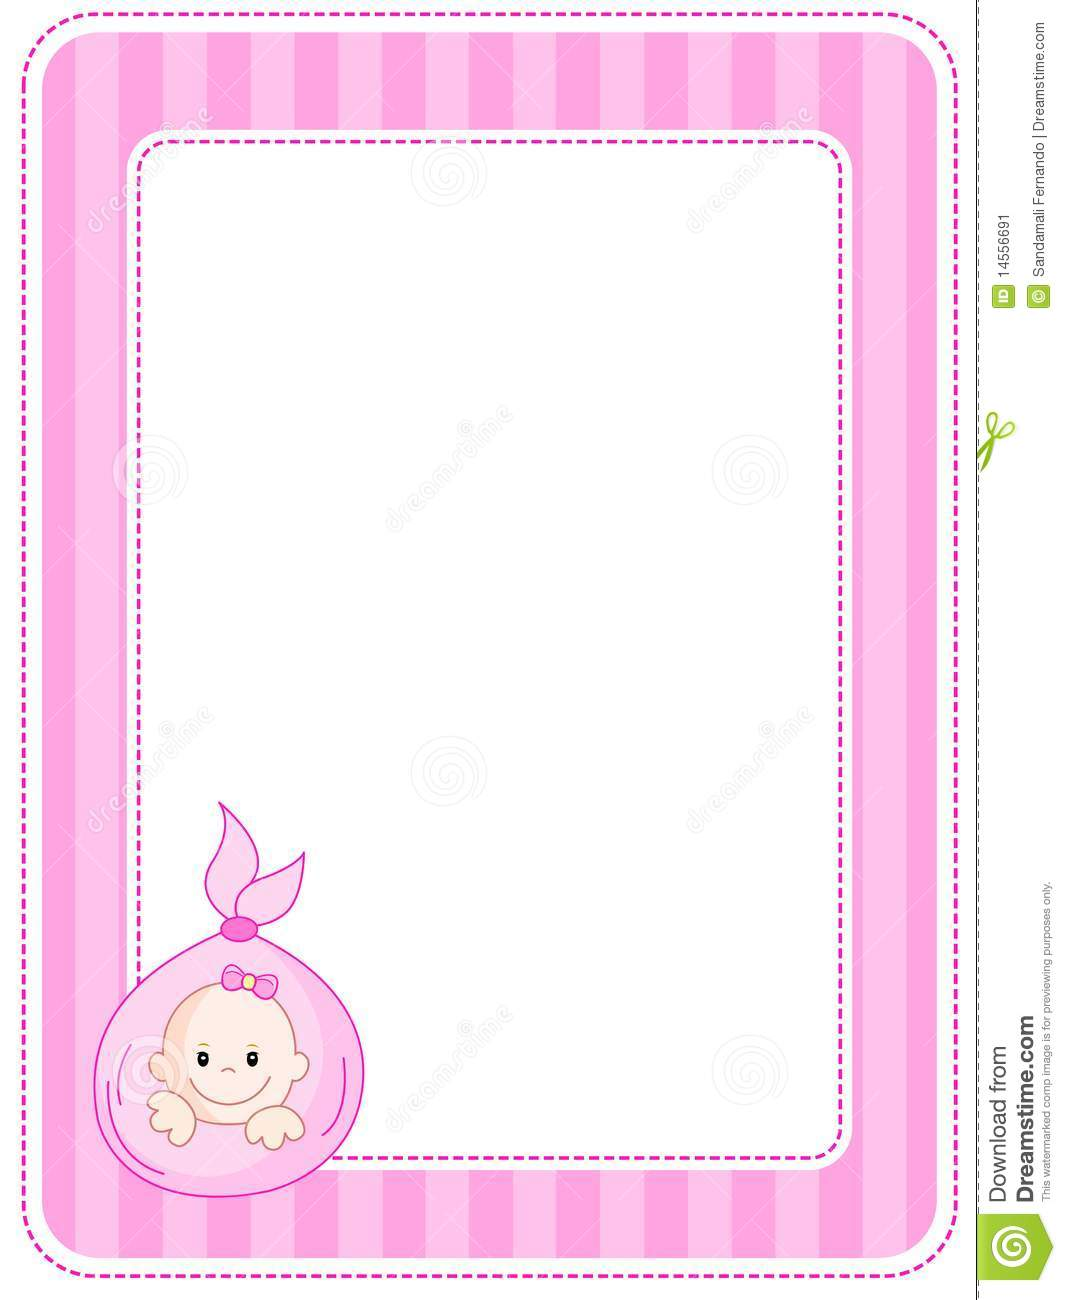 Pink Baby Border Clipart